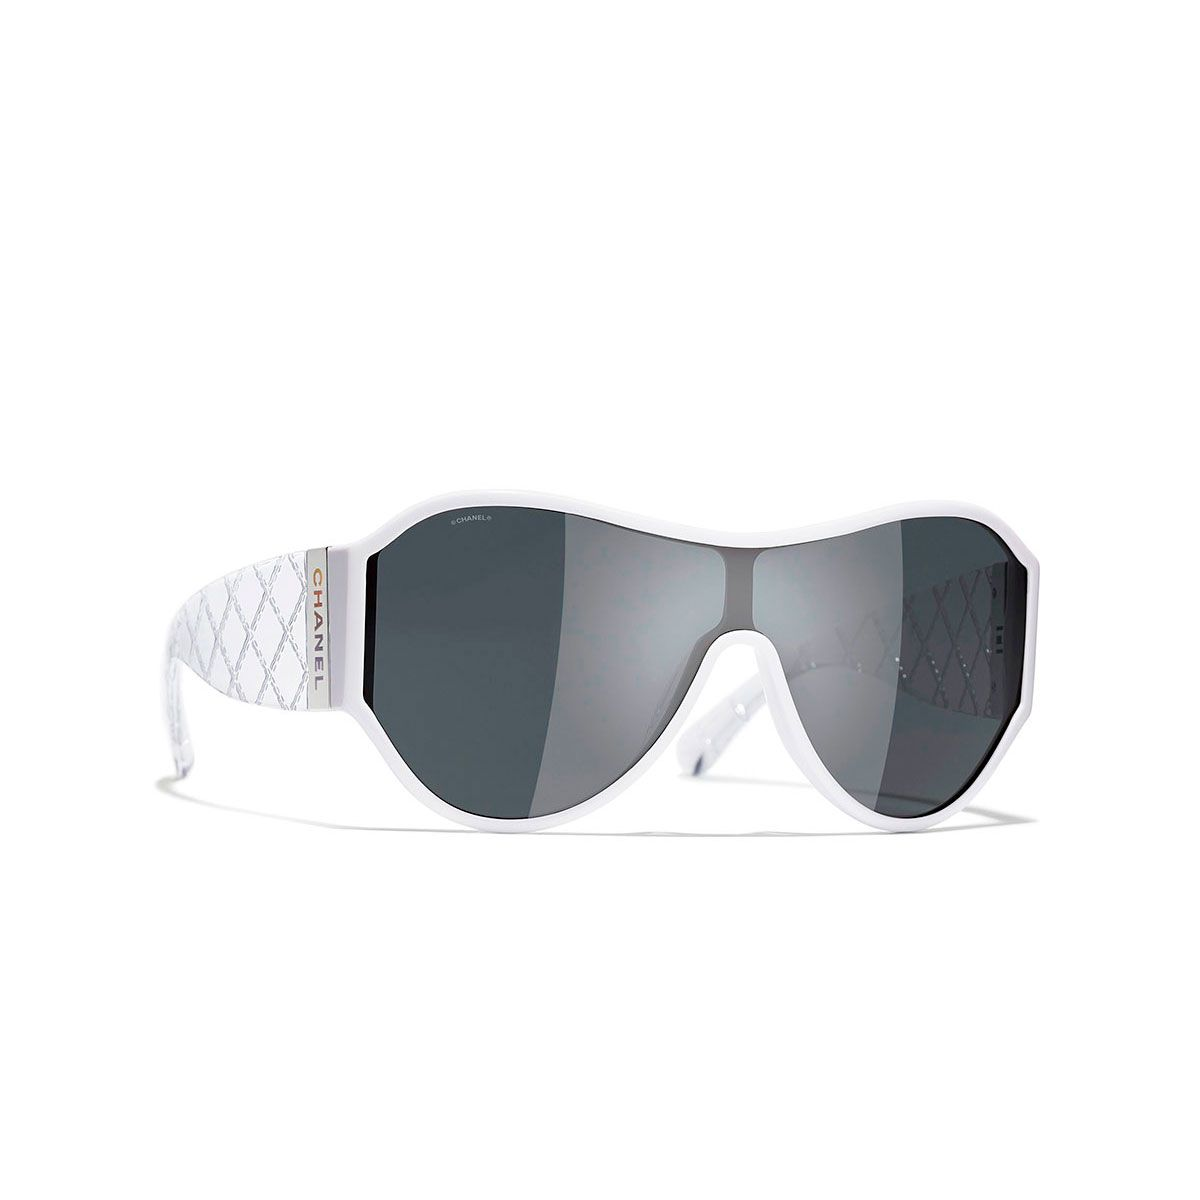 Shield Sunglasses 240 Sunglasses